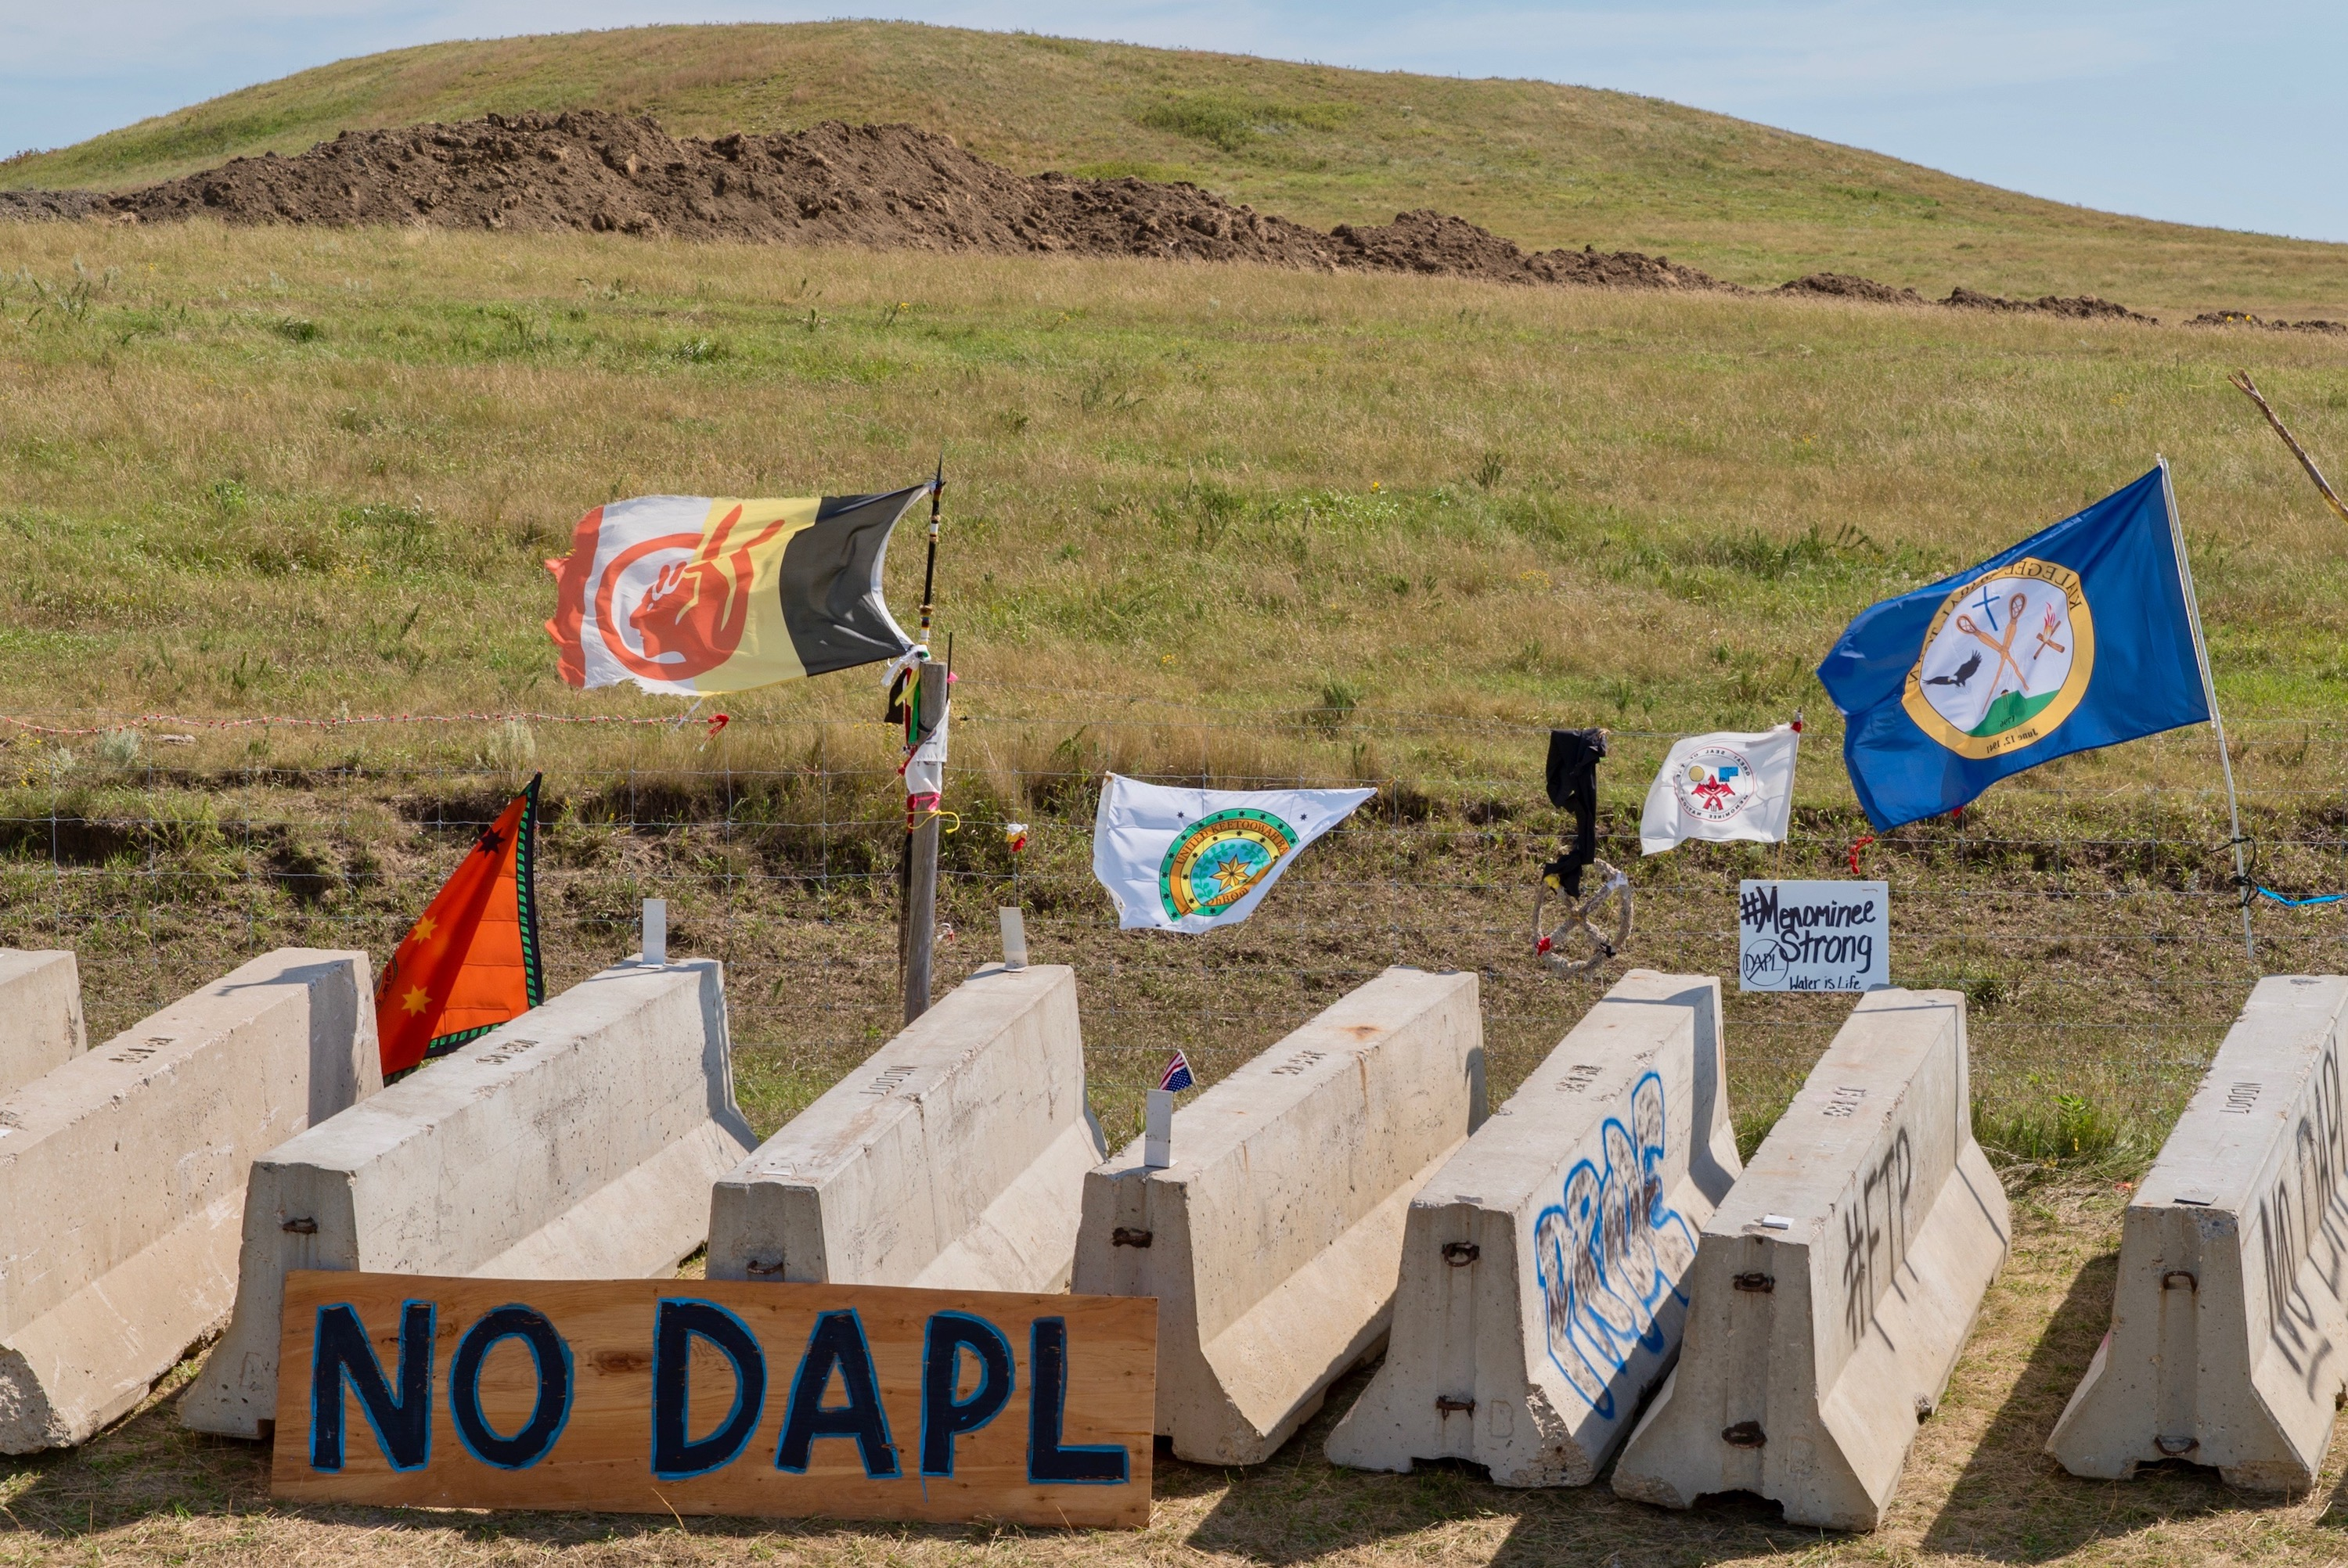 President Trump visits North Dakota after approving controversial Dakota Access Pipeline